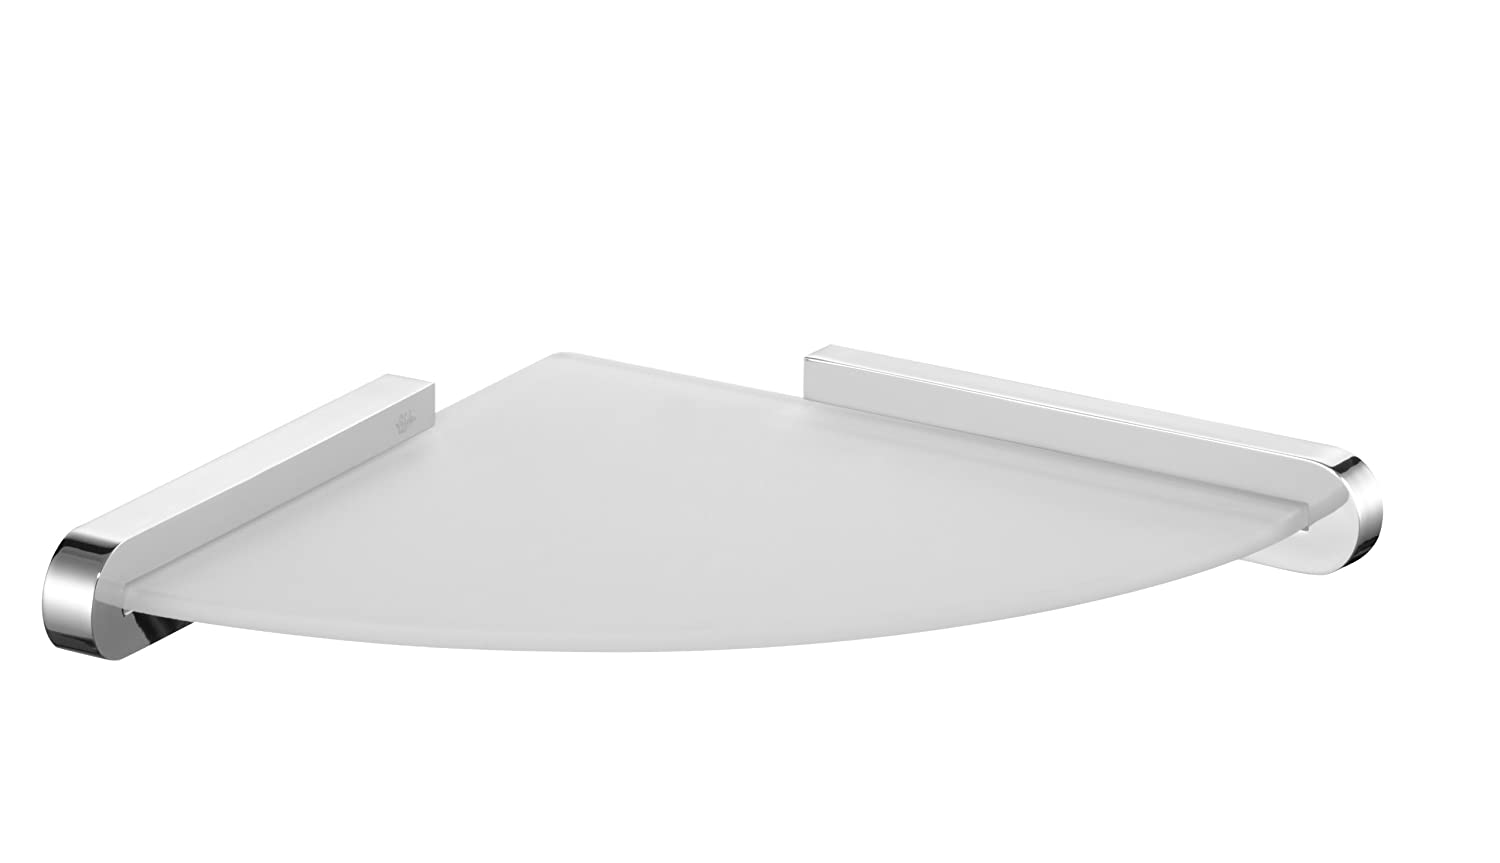 Bisk 02984 Frosted Corner Glass Shelf in Finished Holder, 24 x 24 x 3.4 cm, Silver 2984_chrom